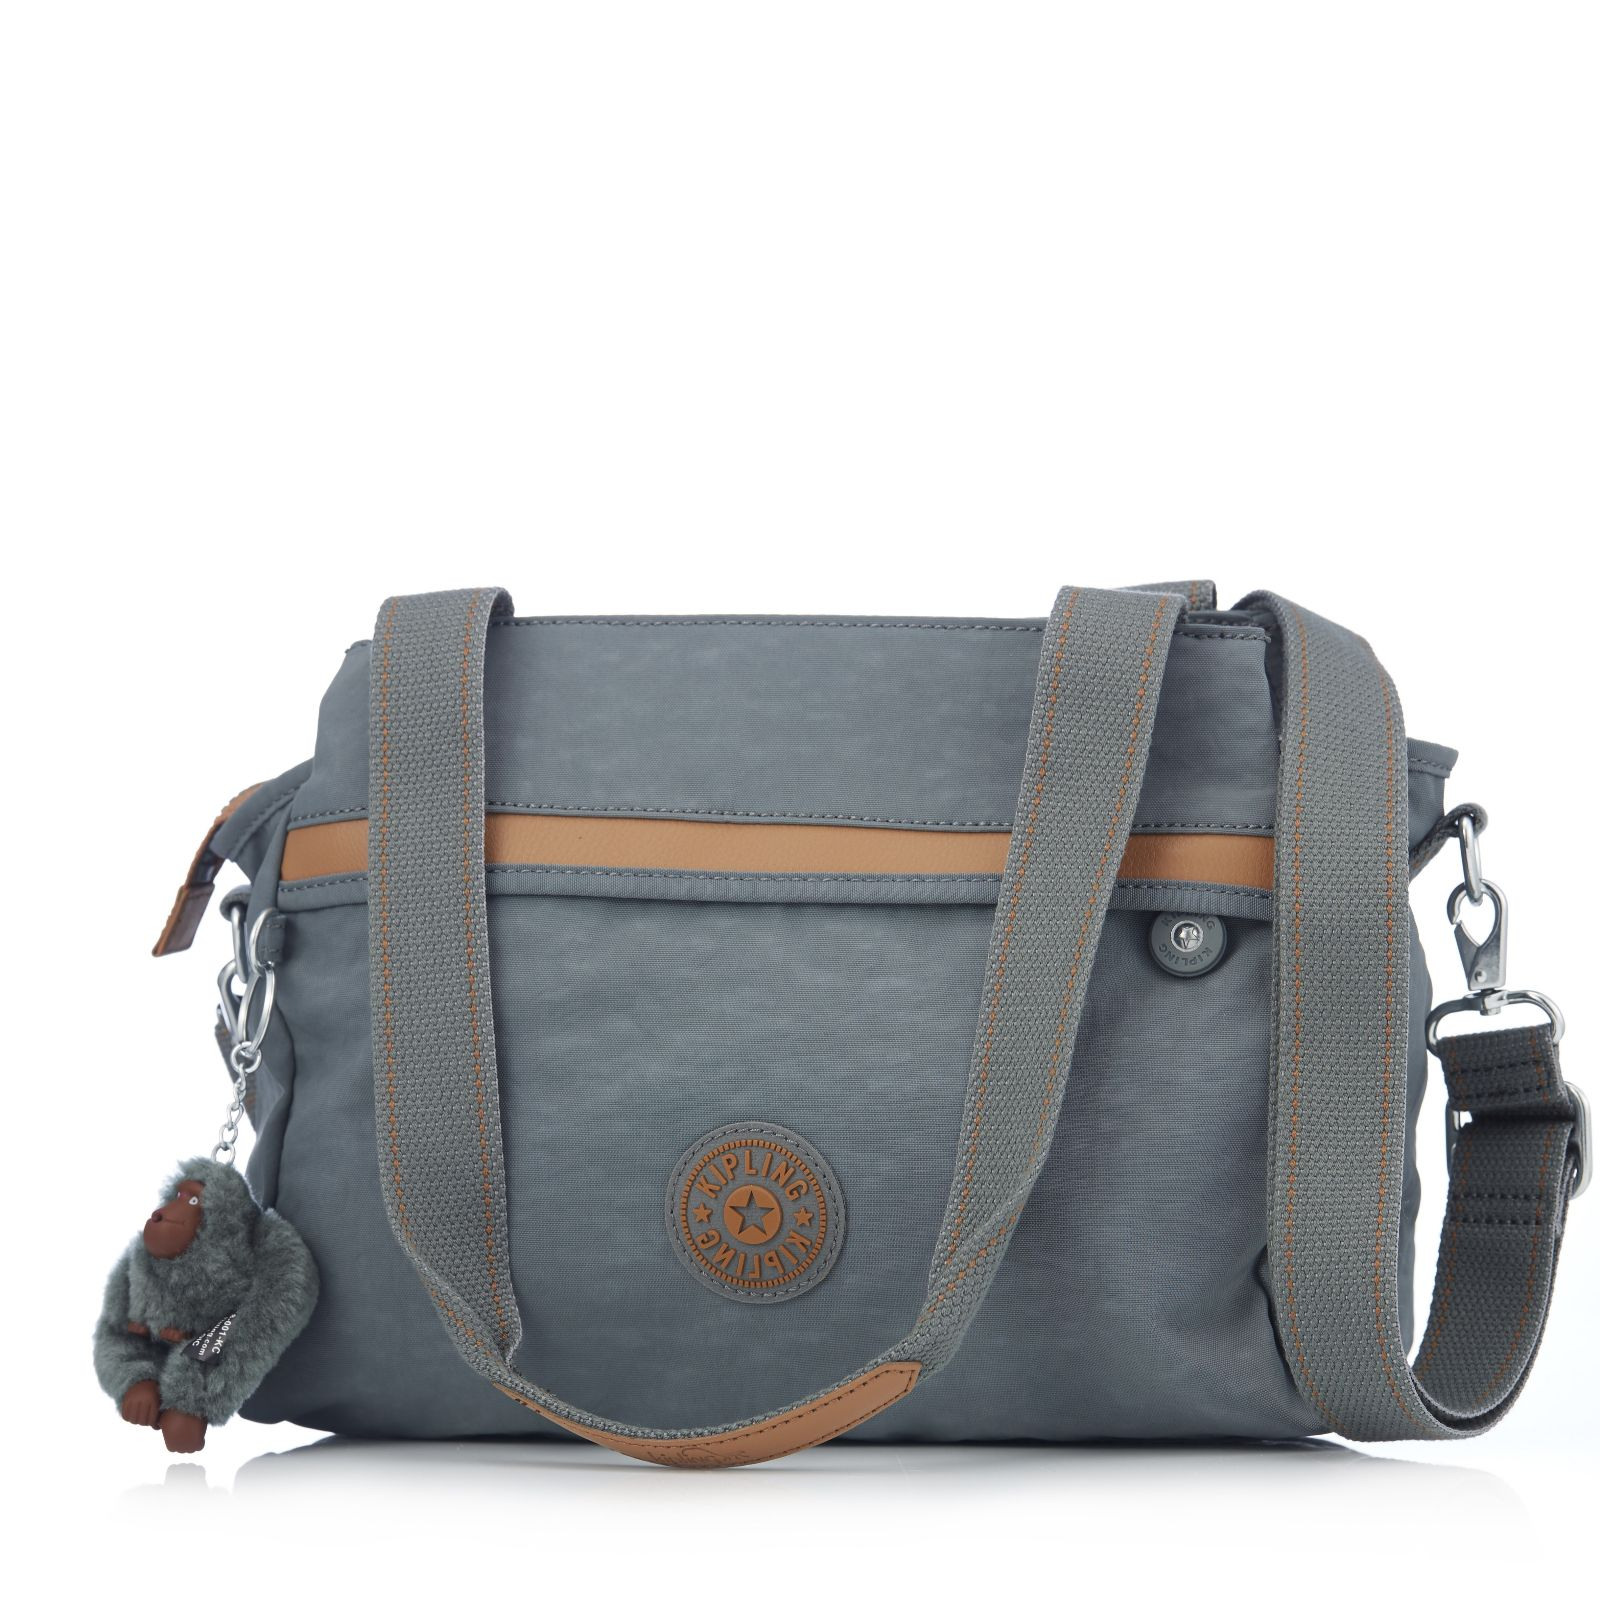 Kipling Neila Medium Shoulder Bag - QVC UK a5642a15d1e95